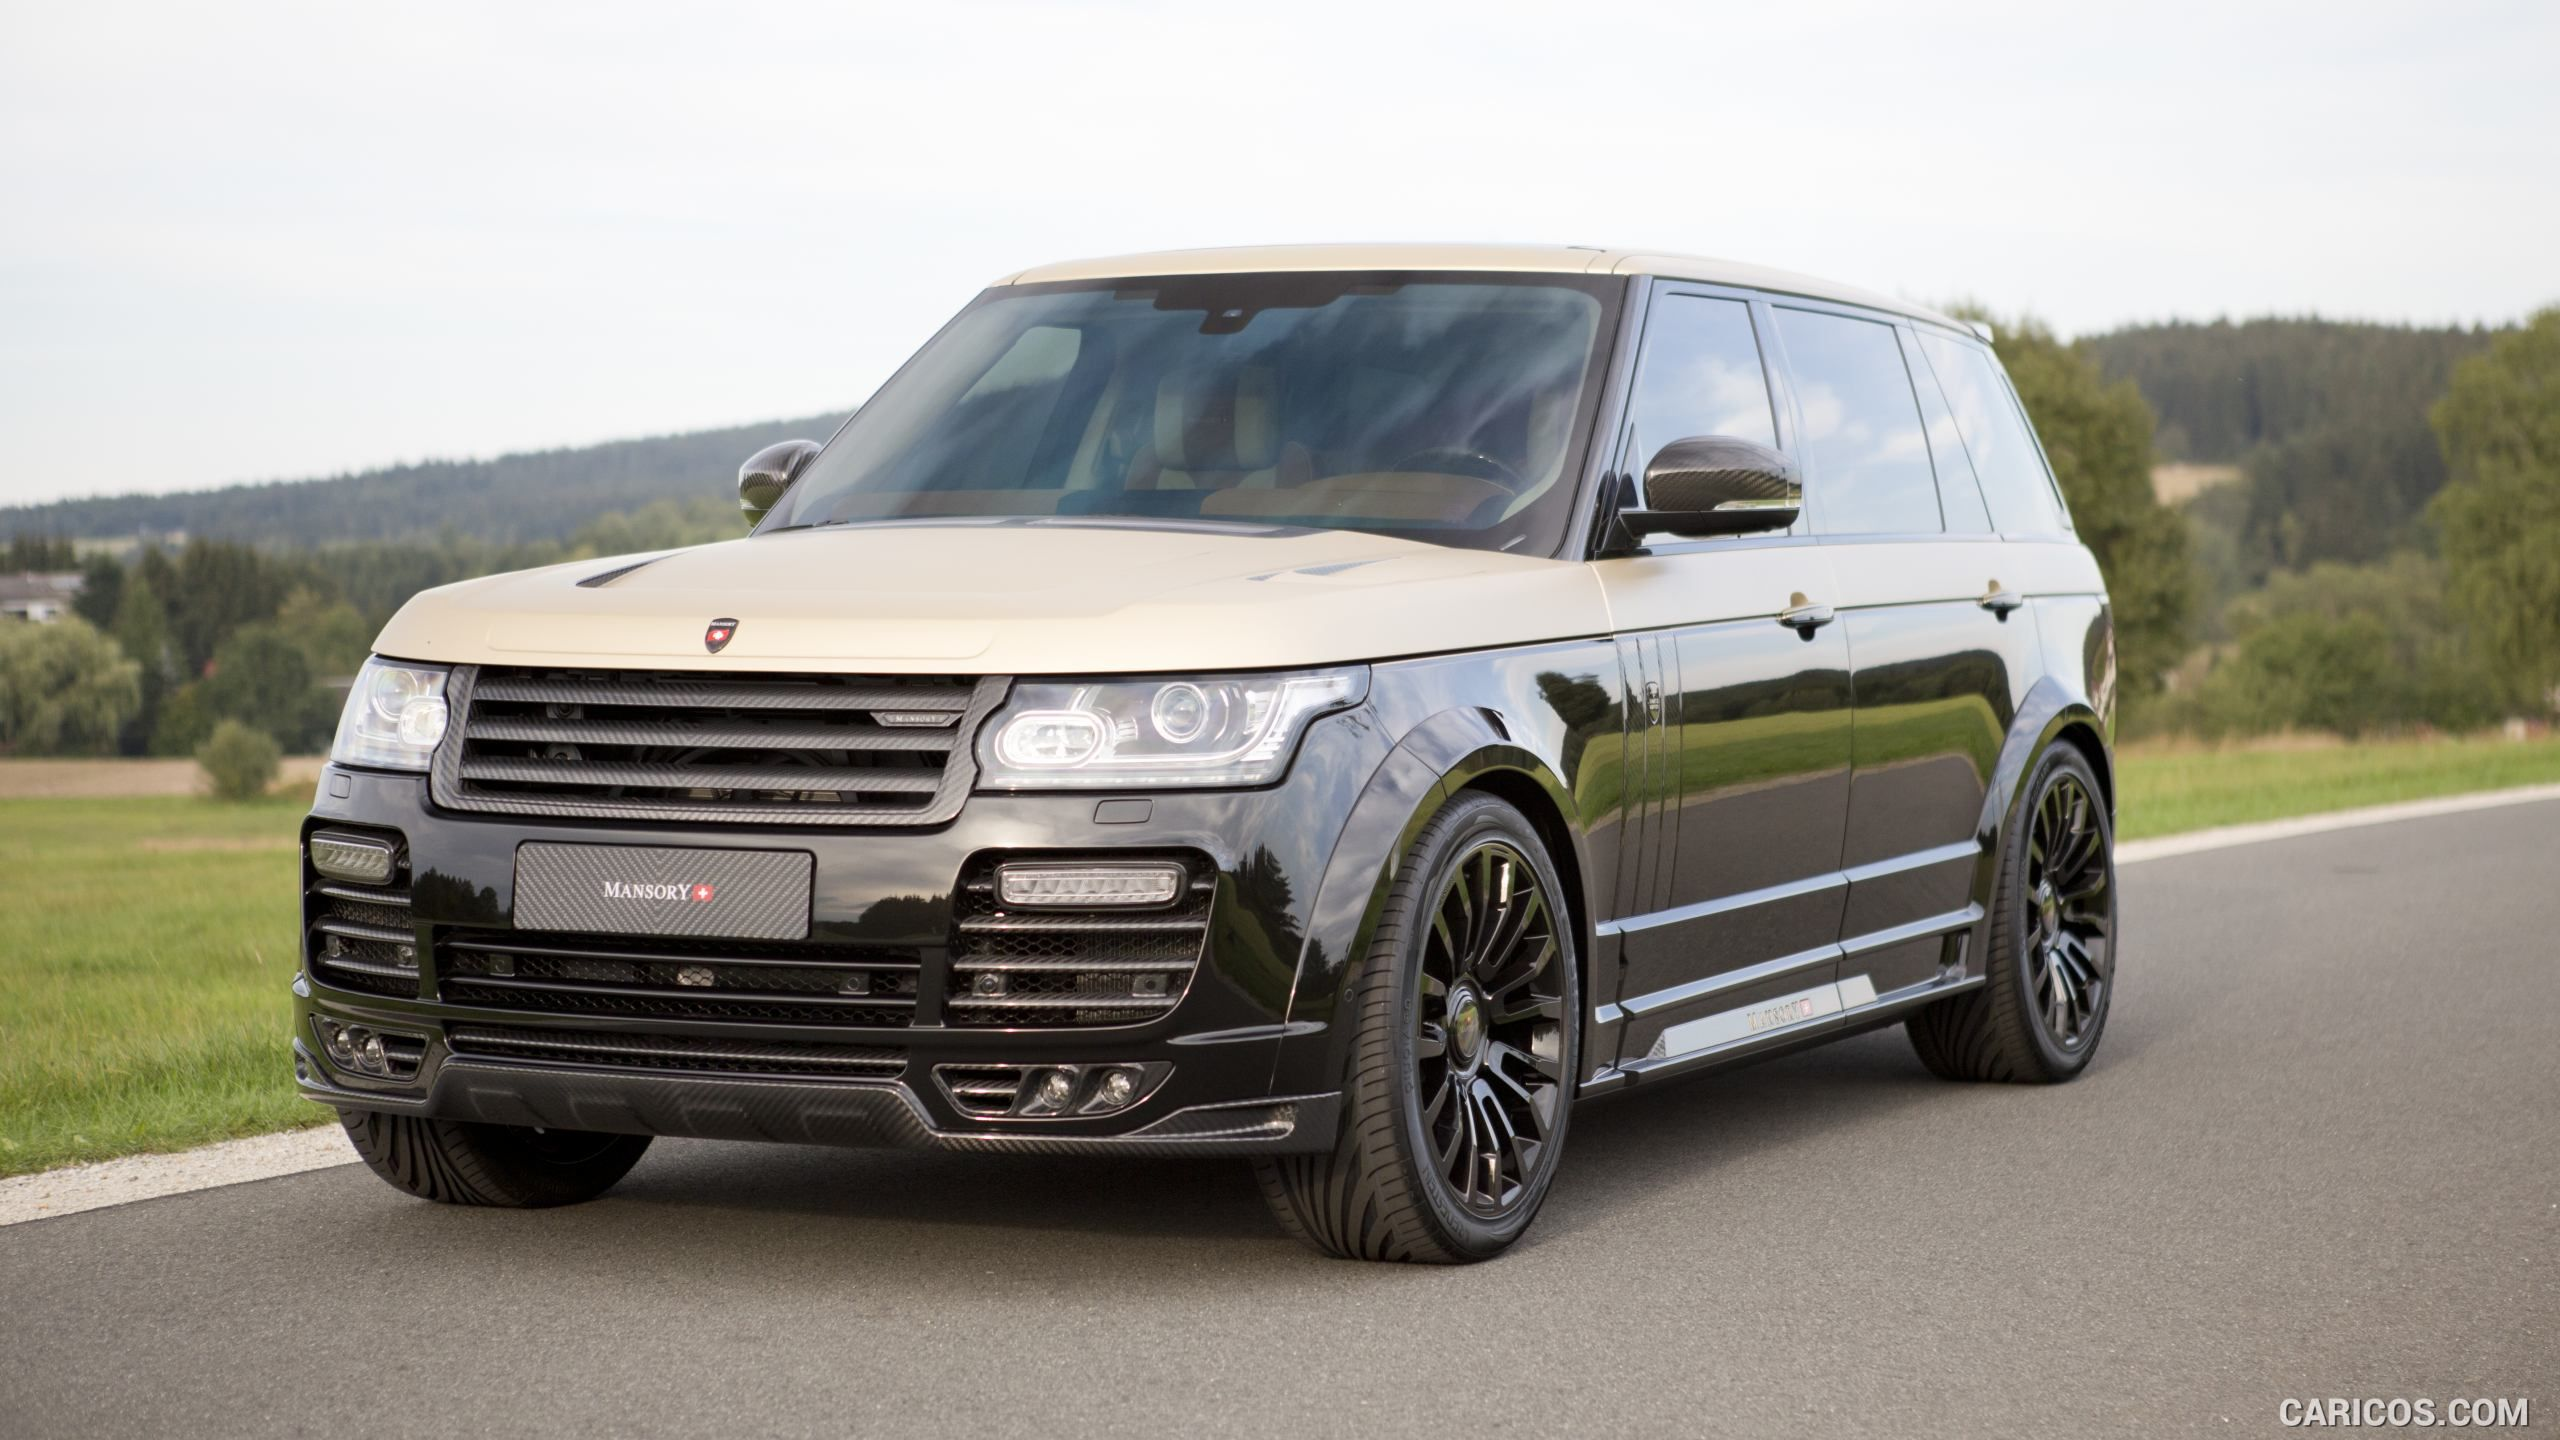 small resolution of caricos mansory range rover autobiography extended 2016 link 12 fotos